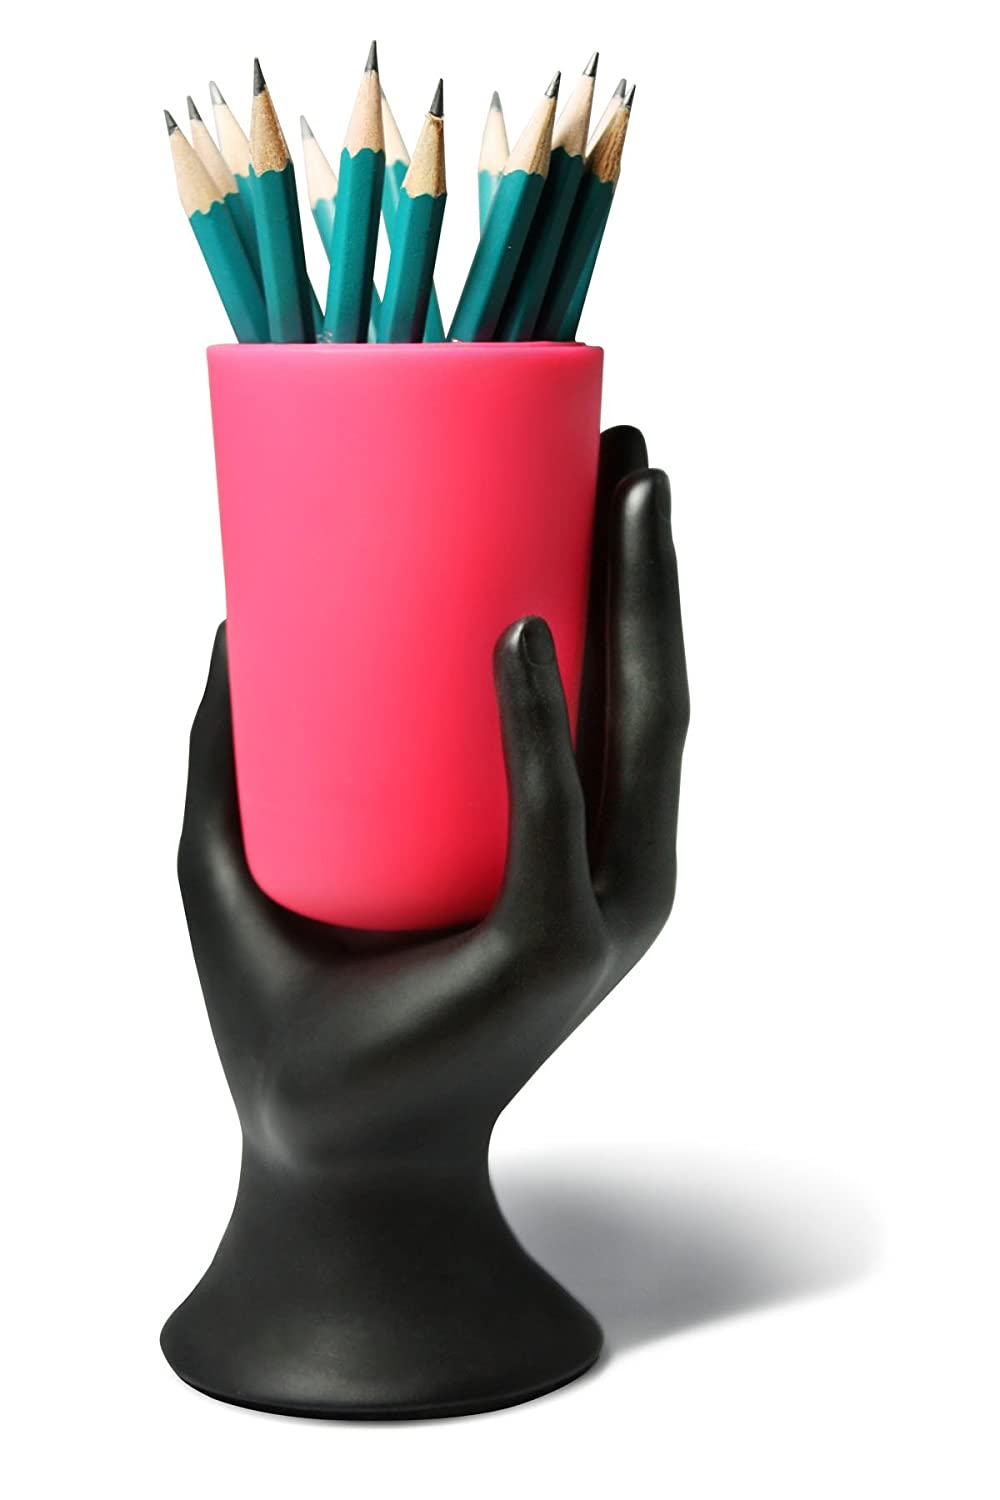 Hand Cup Pen / Pencil Holder By Lil Gift (Pink) by Arad